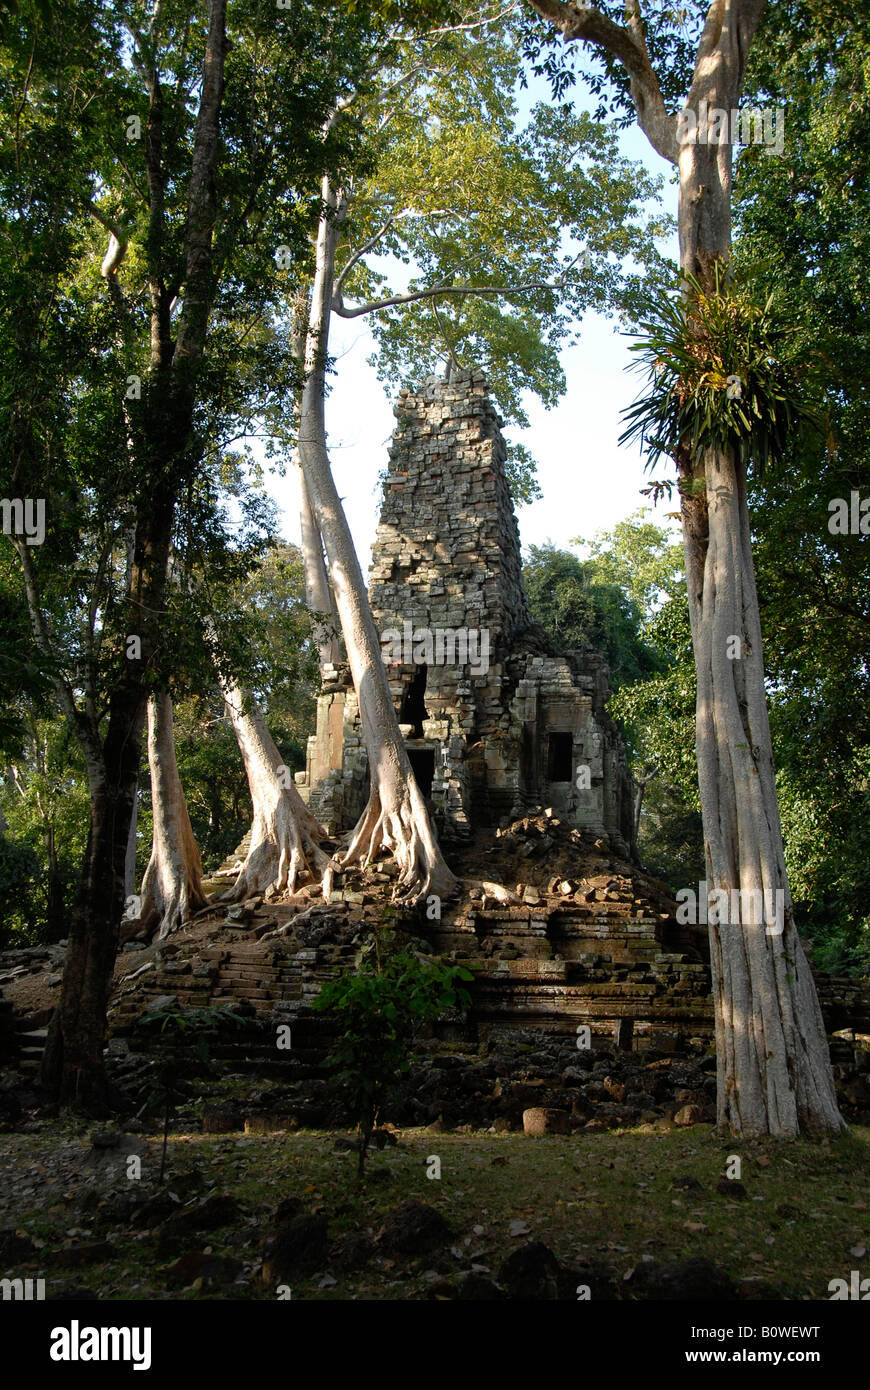 Preah Palilay, Khmer temple surrounded by tall trees, Angkor Thom, Siem Reap, Cambodia, Southeast Asia Stock Photo